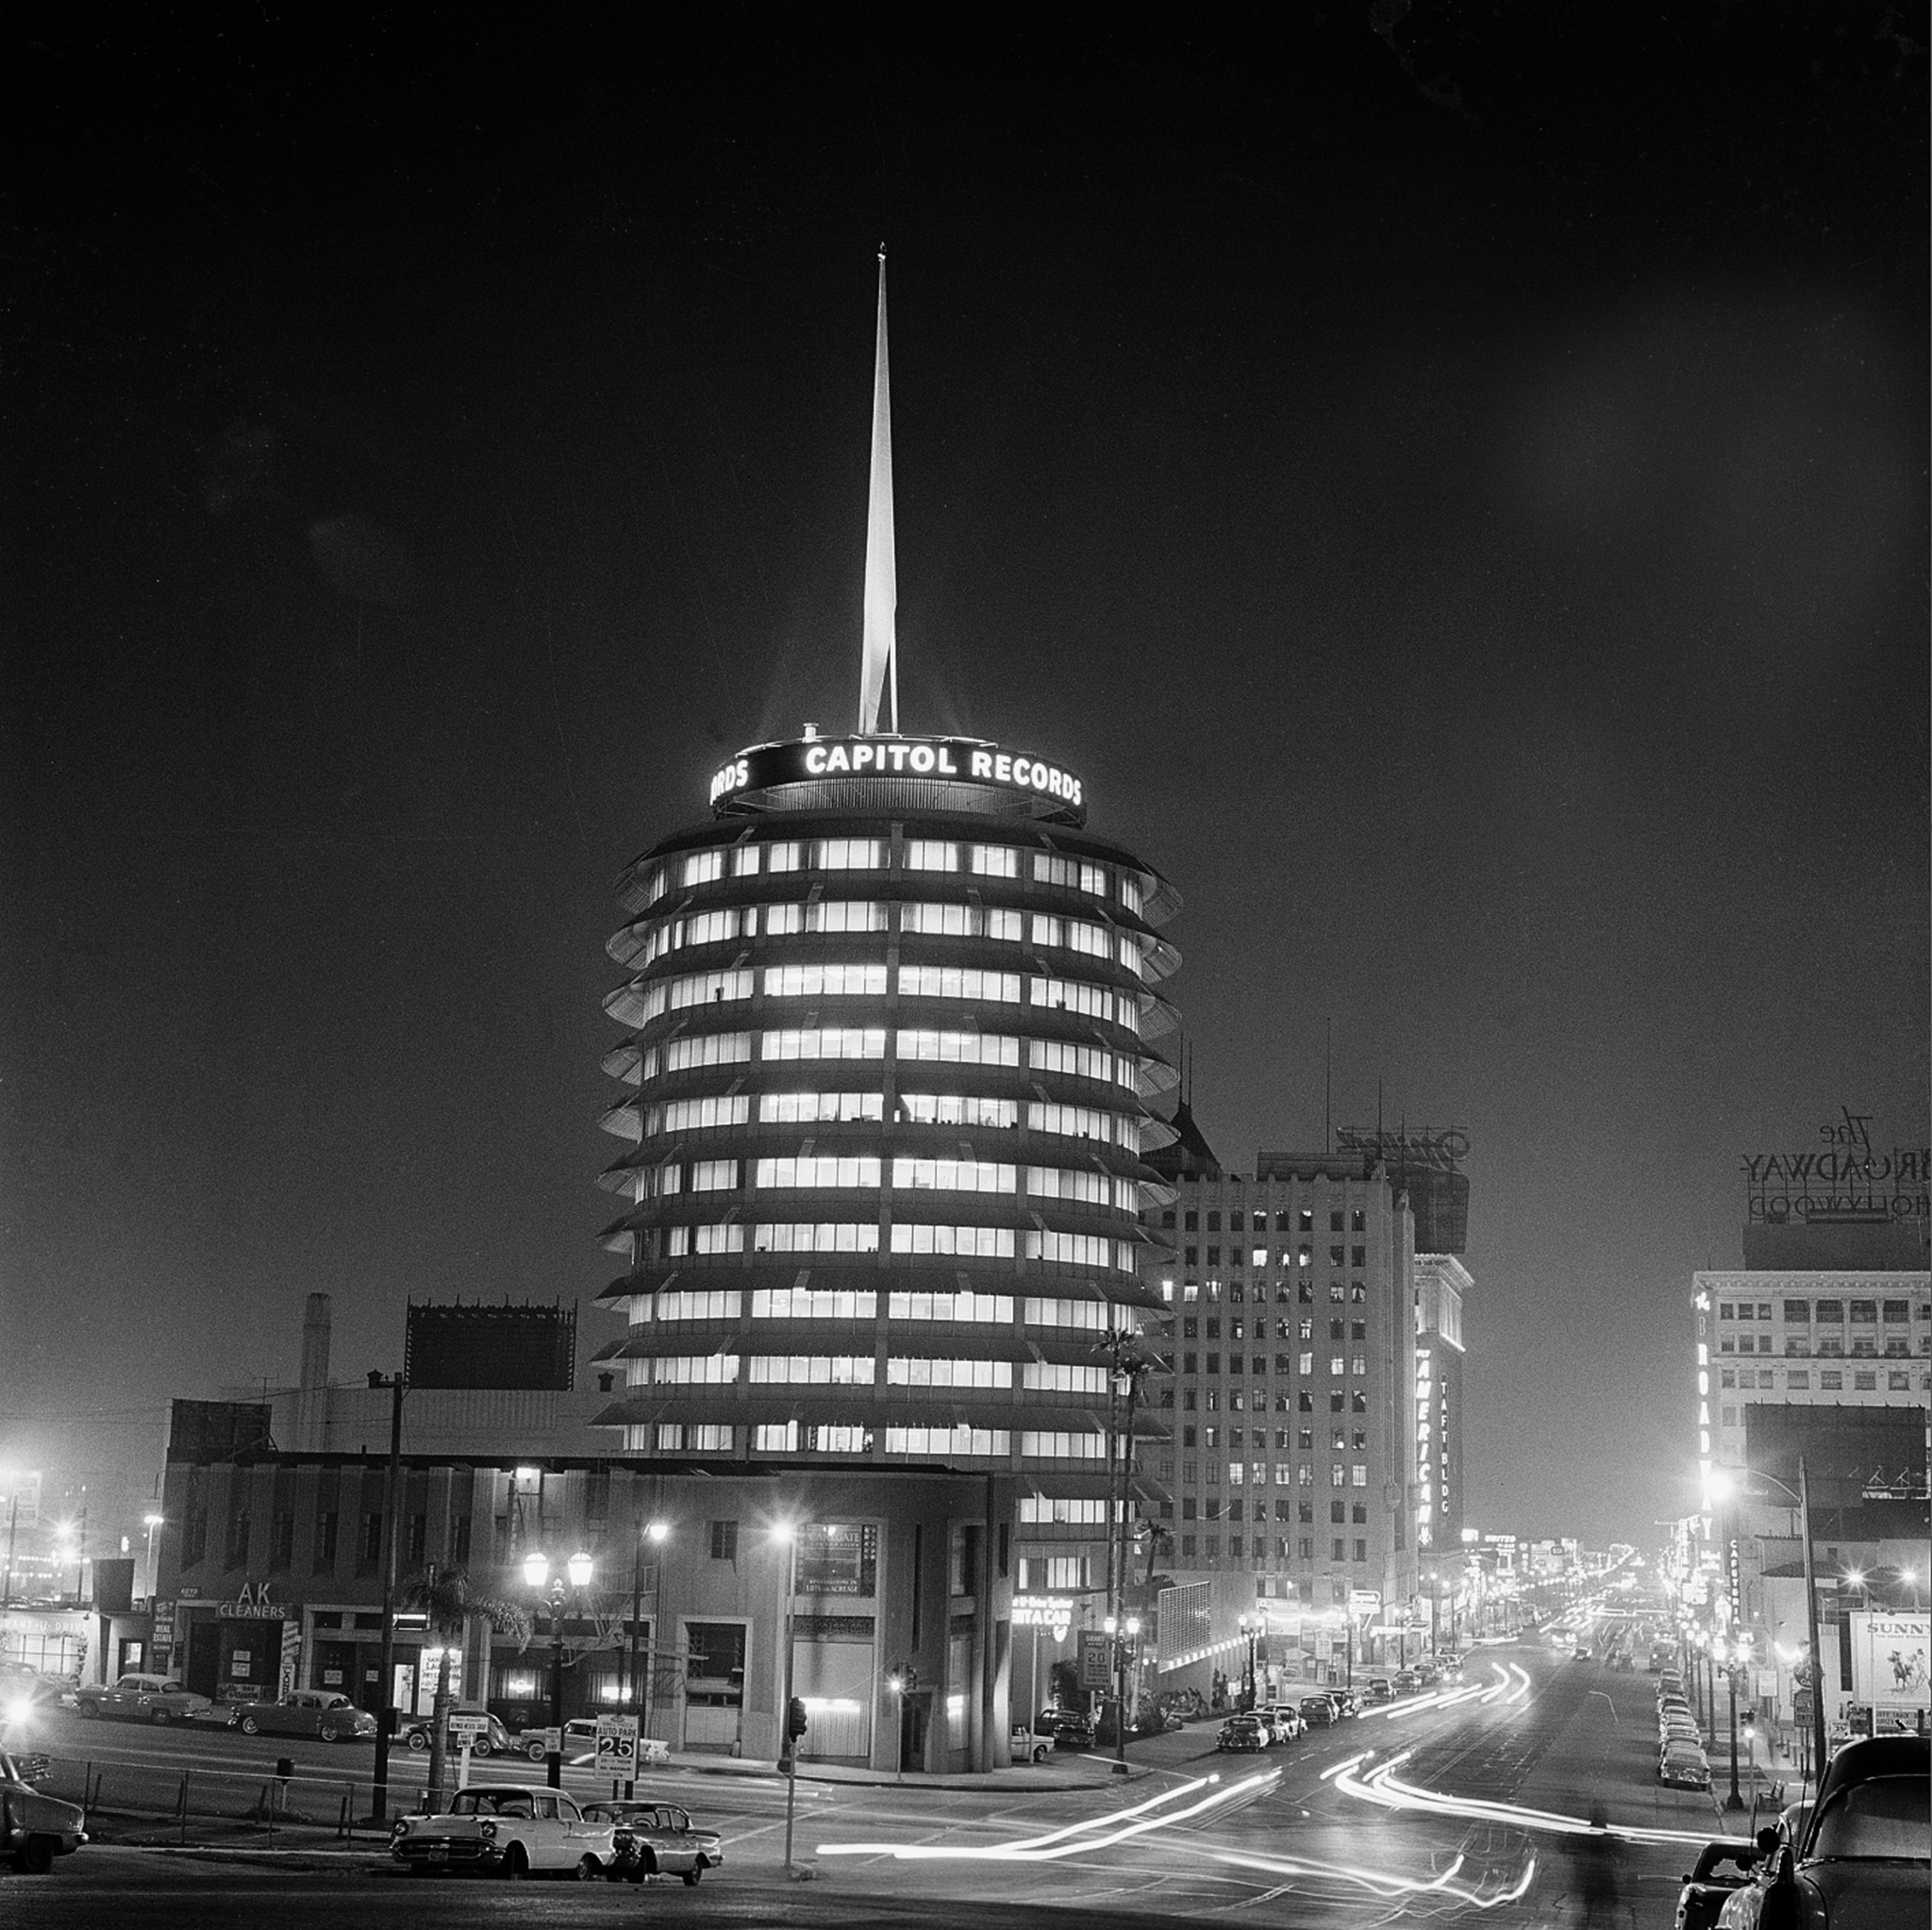 The Capitol Records building on Vine St. in 1958.